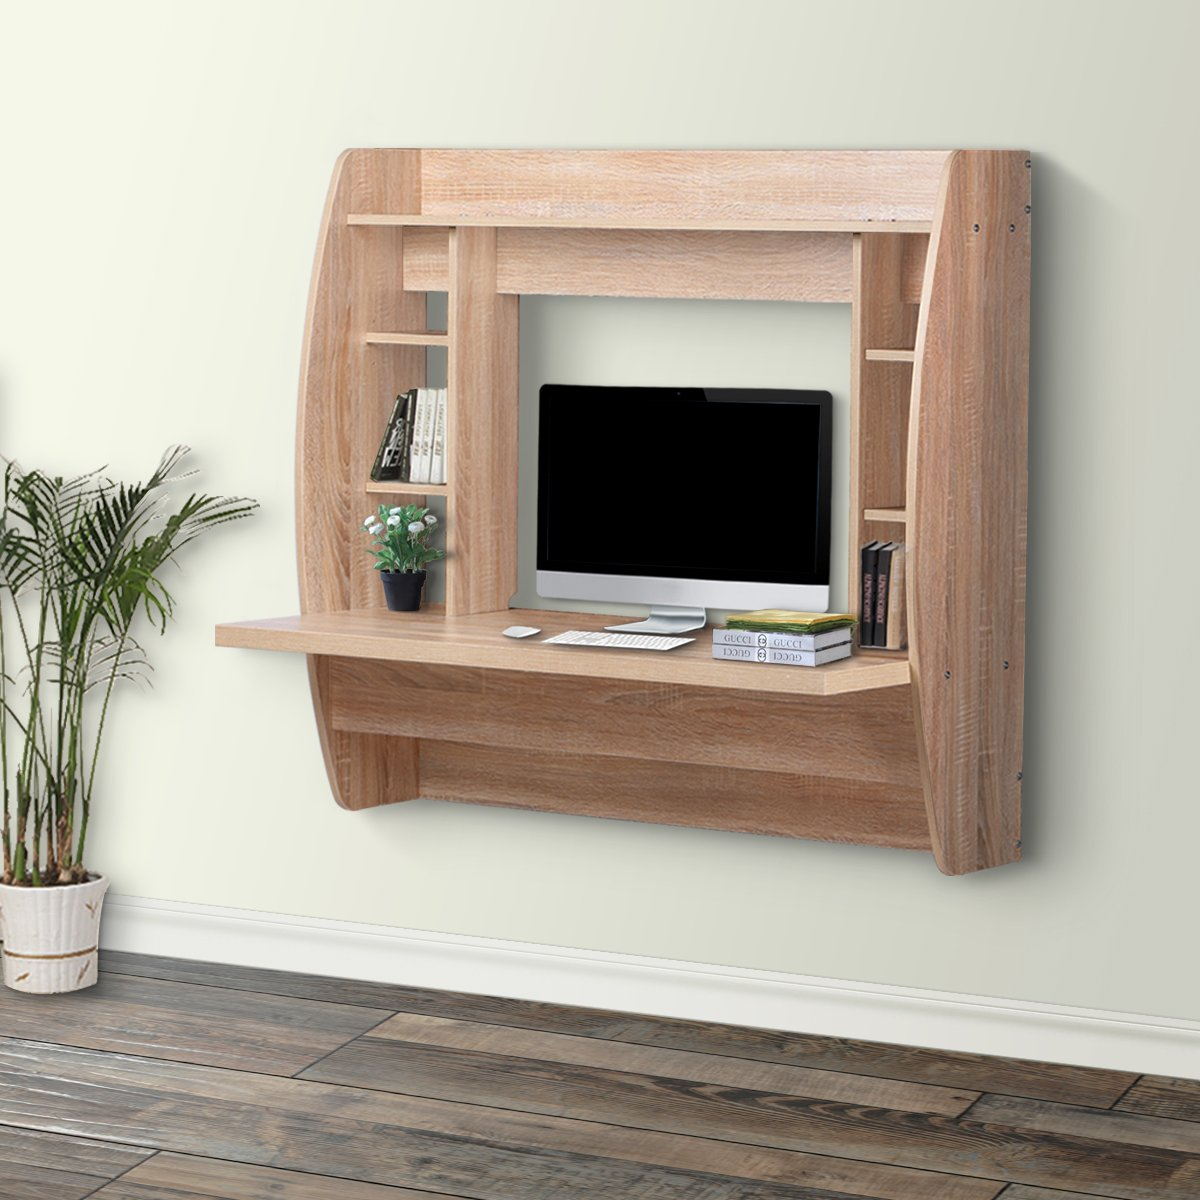 DEVAISE Wall Mounted Floating Computer Desk with Storage / Oak